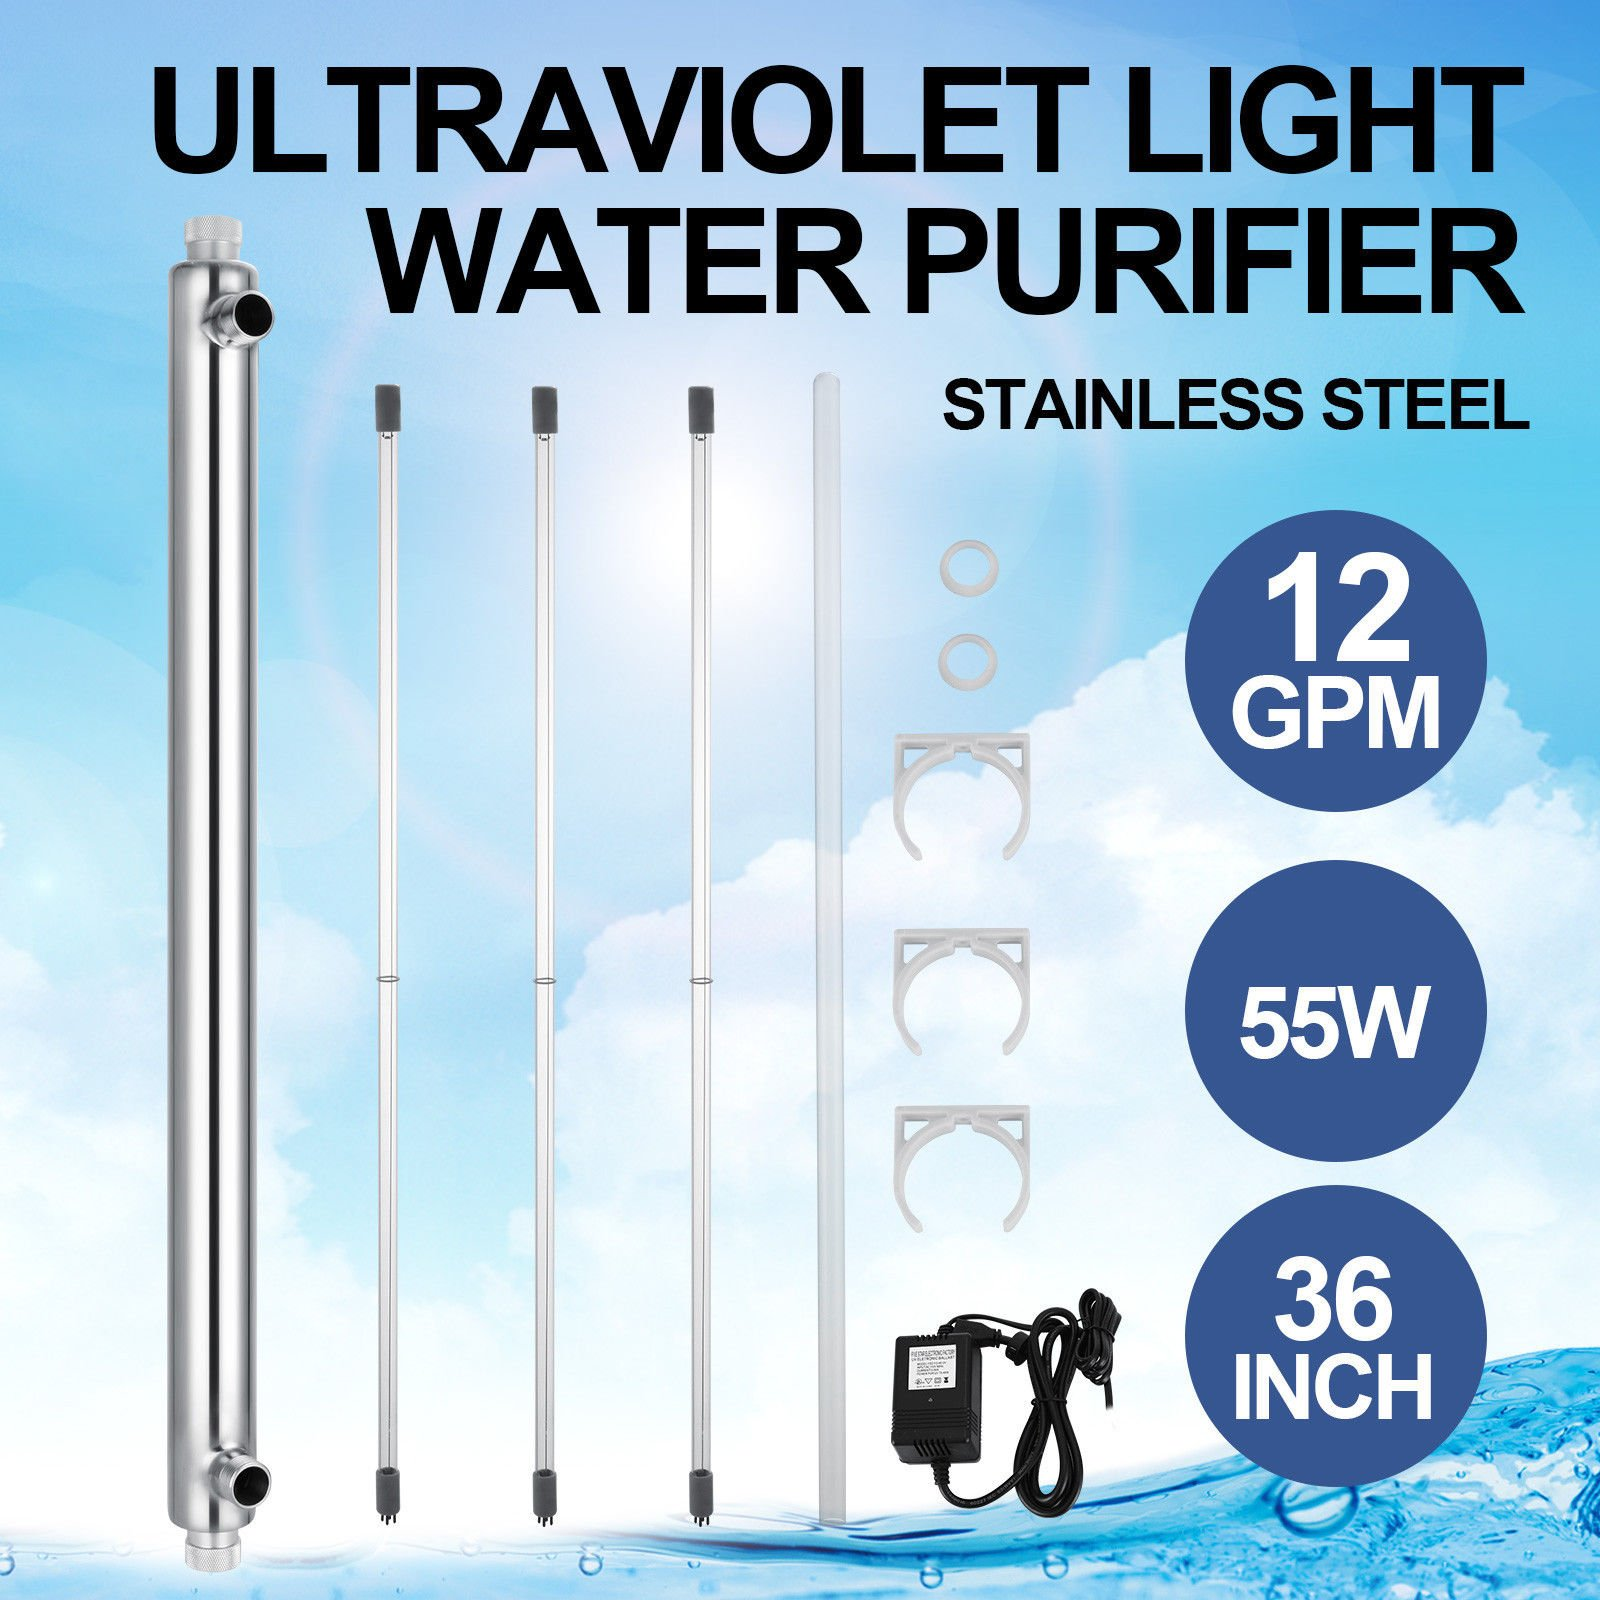 VEVOR Whole House Water Purifier 12 GPM Capacity Water Sterilizer 110V Water Purifier Light Bulb Lamp Life up to 9000 hours (3 Bulbs +1 Quartz Sleeve + 1 Electronic Ballast )